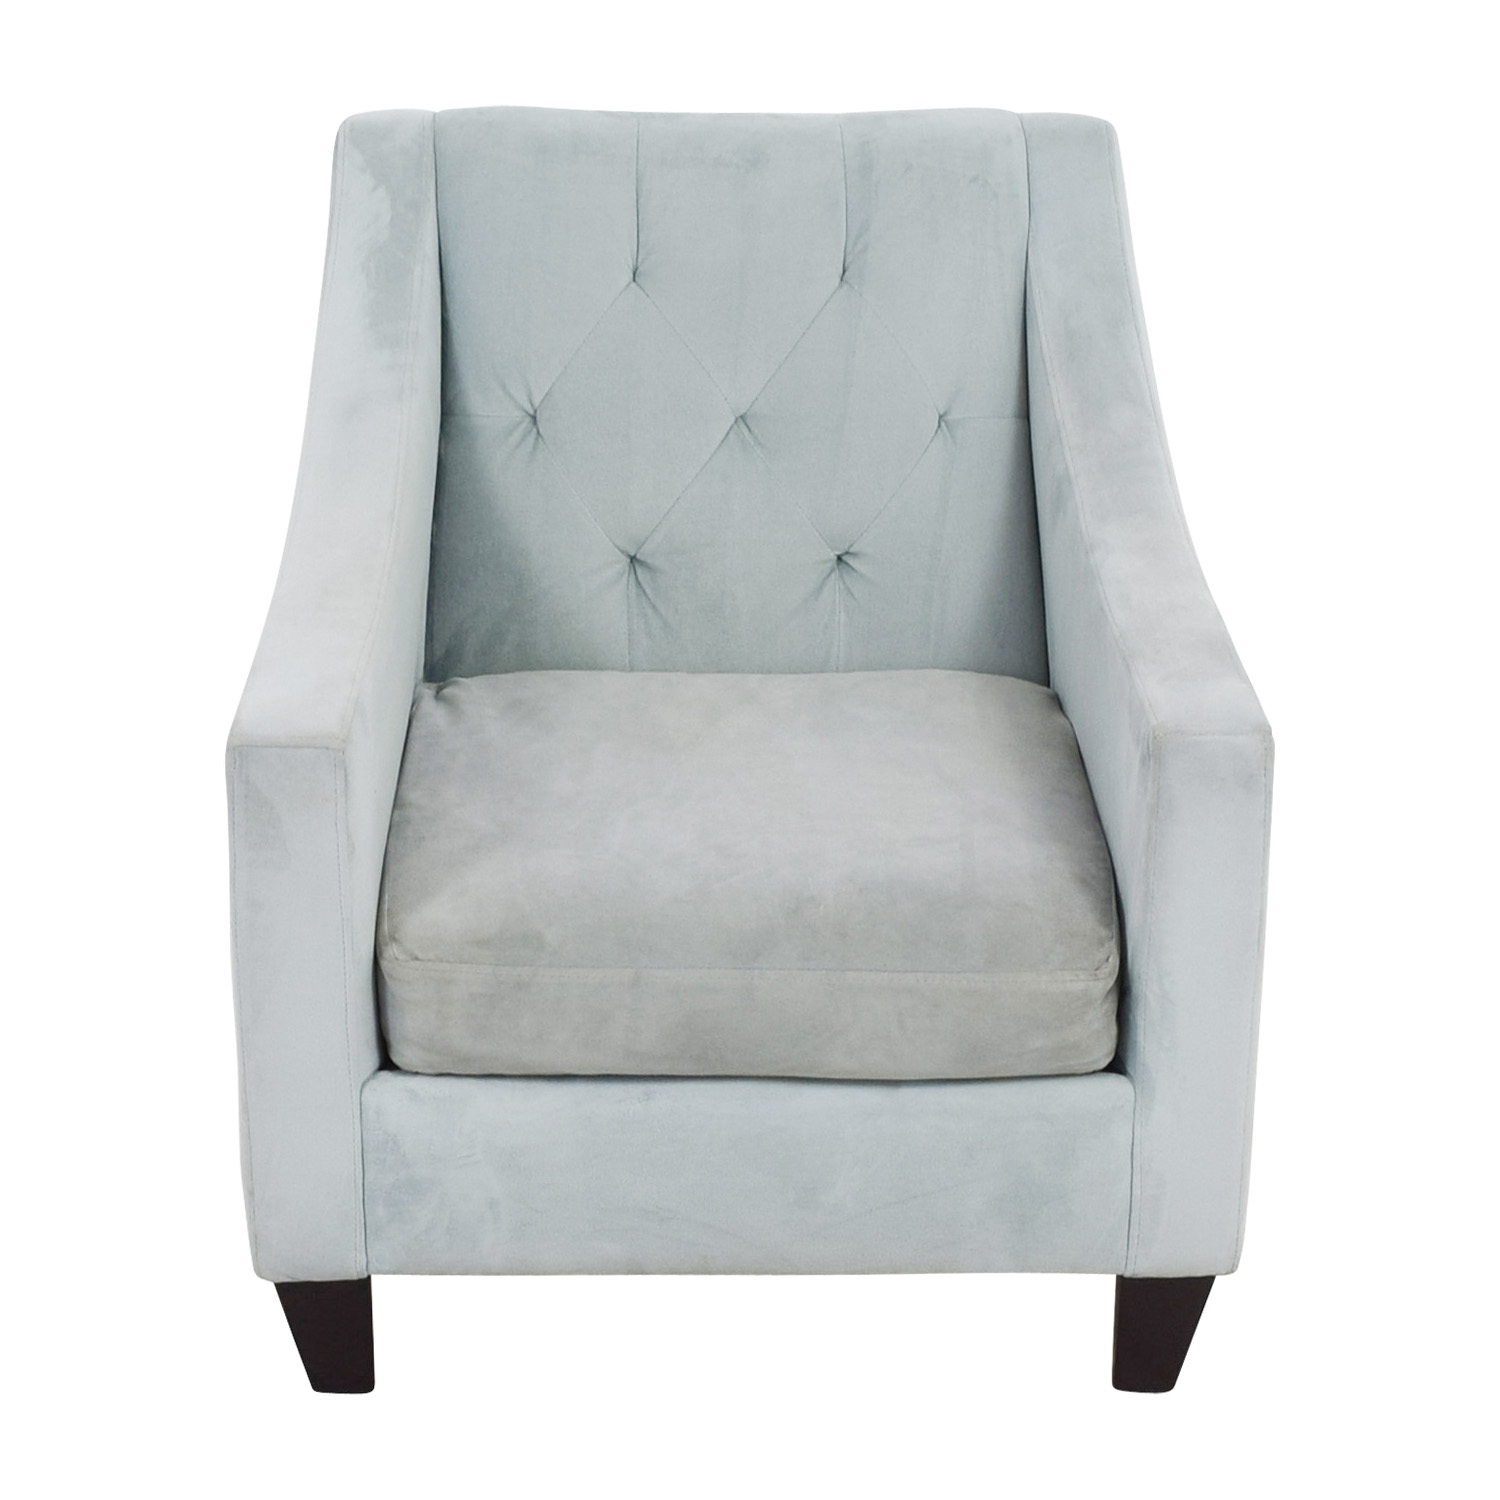 Max Studio Blue Tufted Velvet Armchair / Sofas